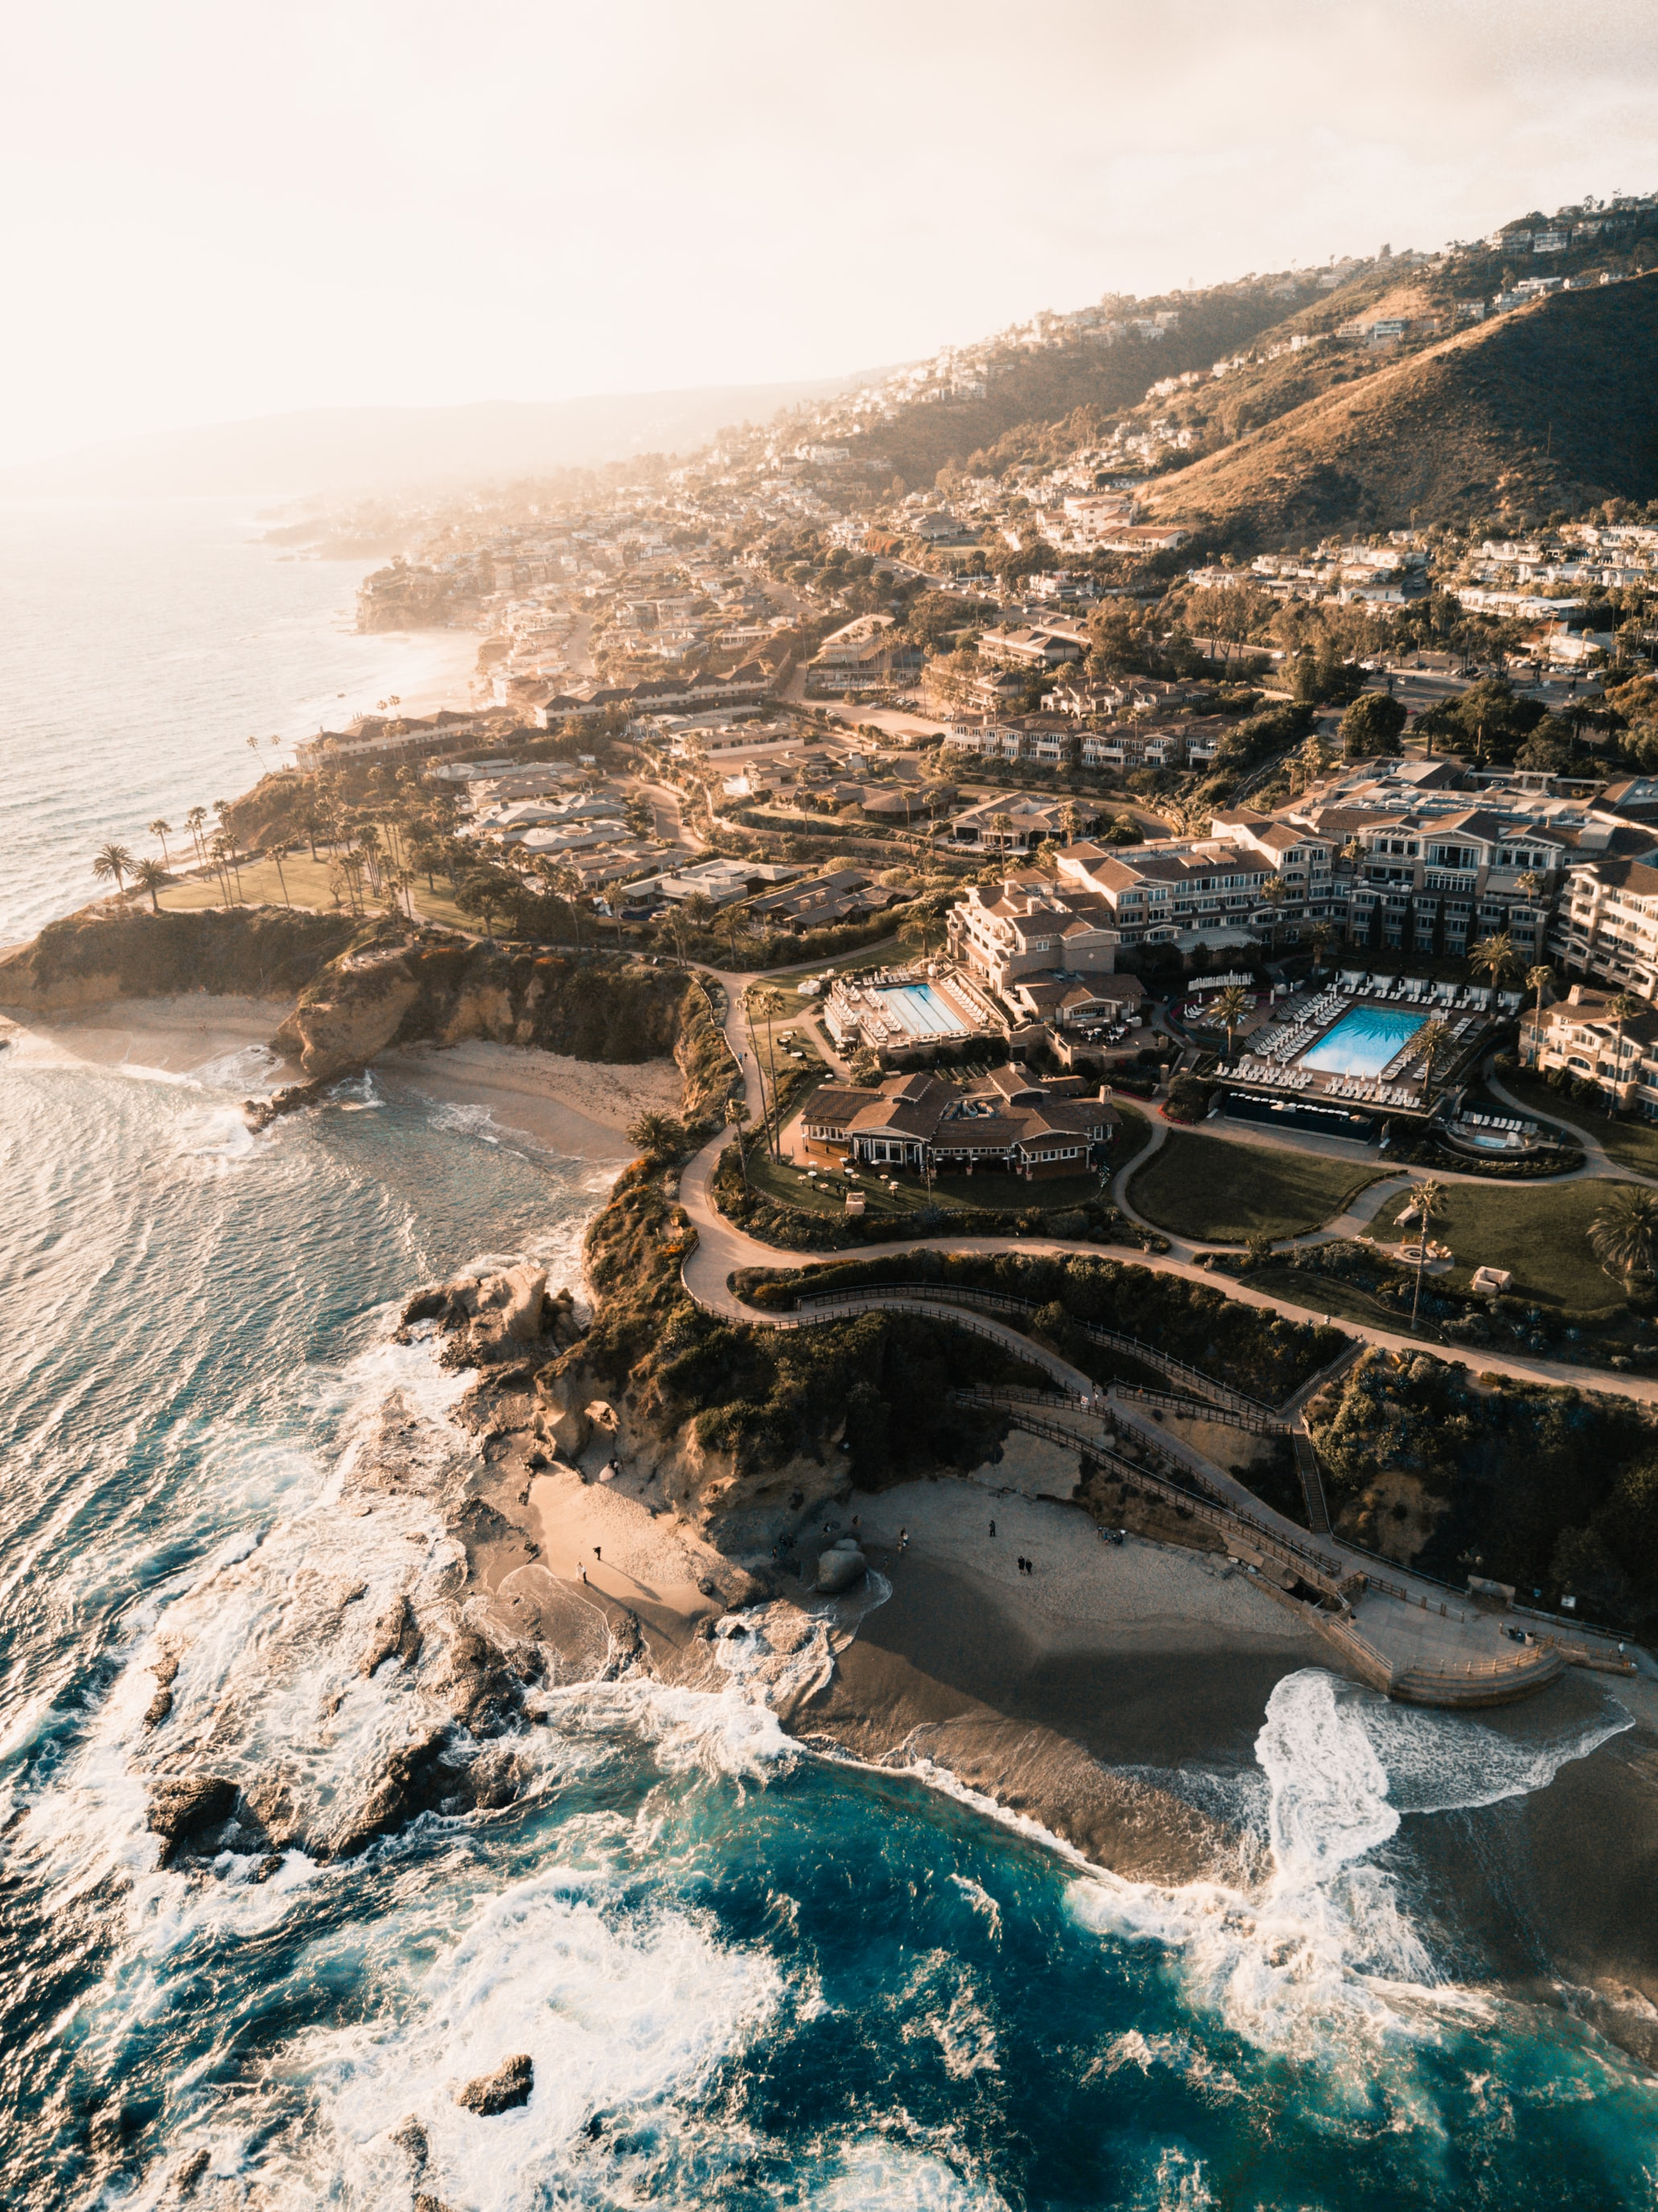 Drone aerial view of the coastal beach resort at Laguna Beach